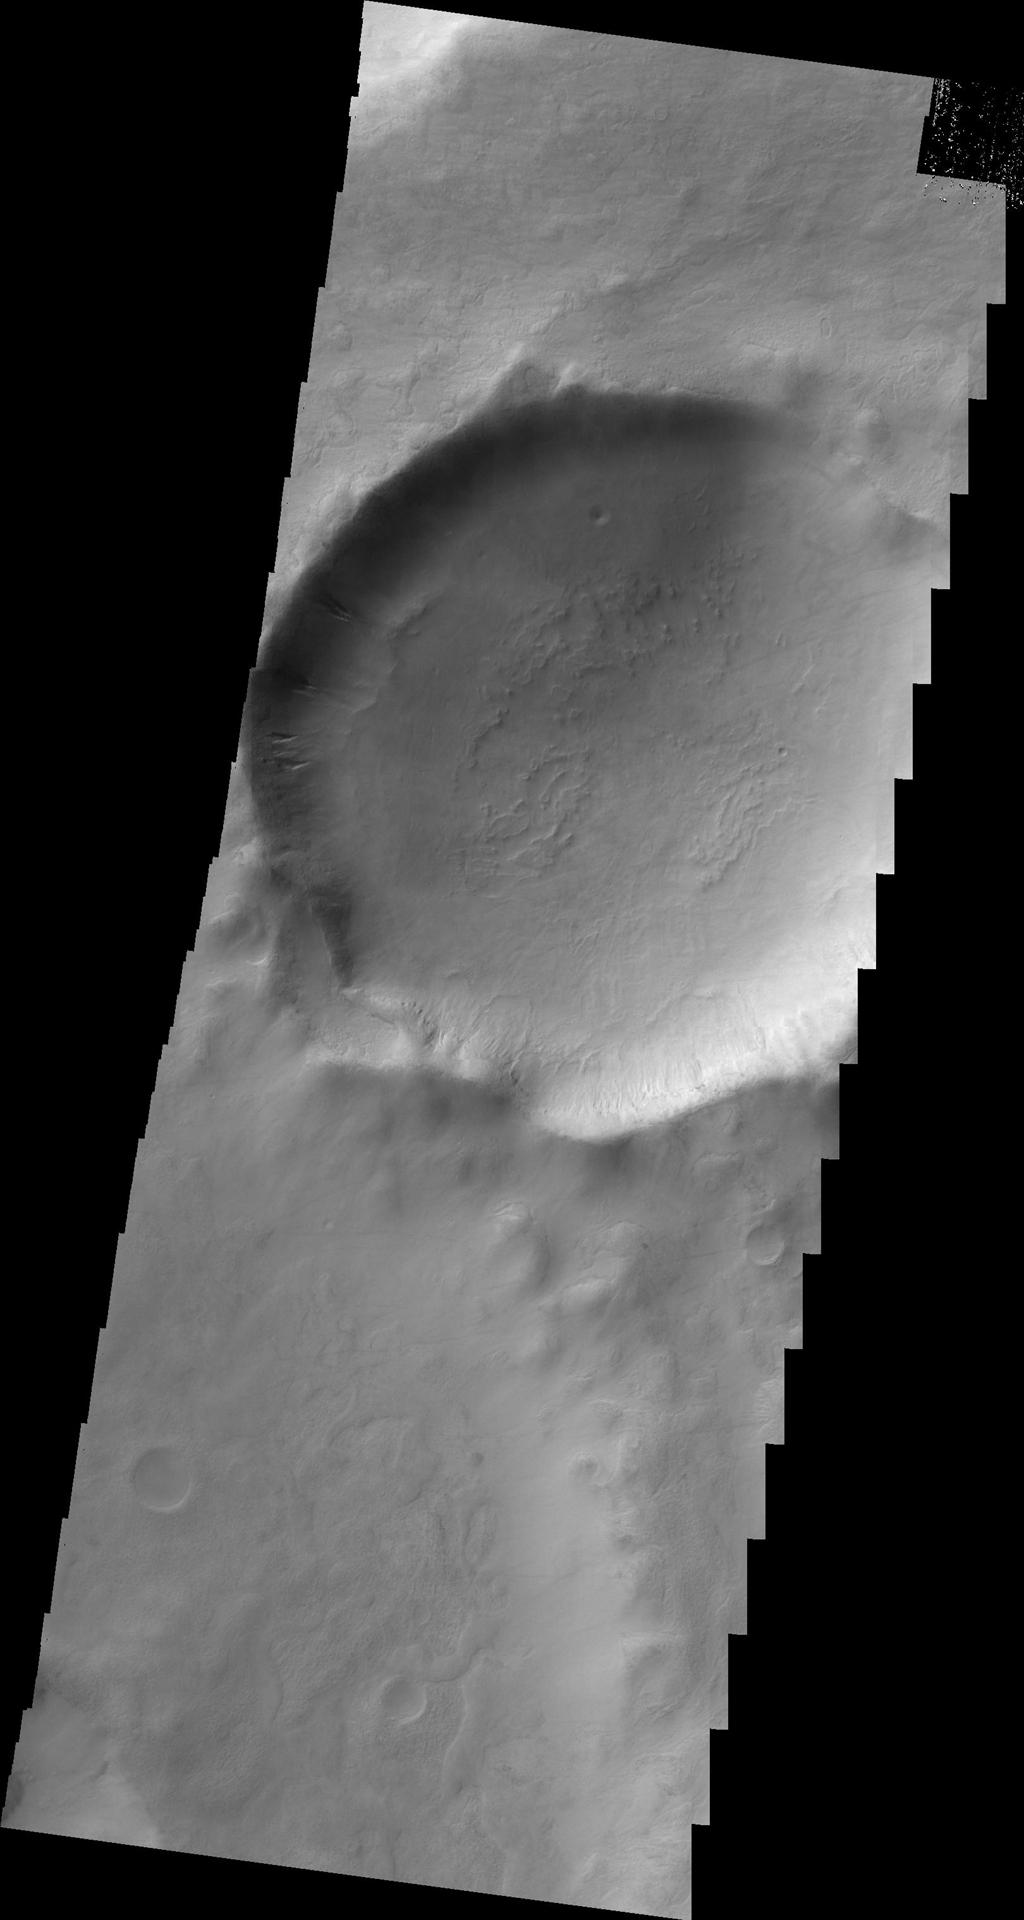 Several gullies located on the rim of this unnamed crater in Terra Sirenum are seen in this image taken by NASA's 2001 Mars Odyssey spacecraft.